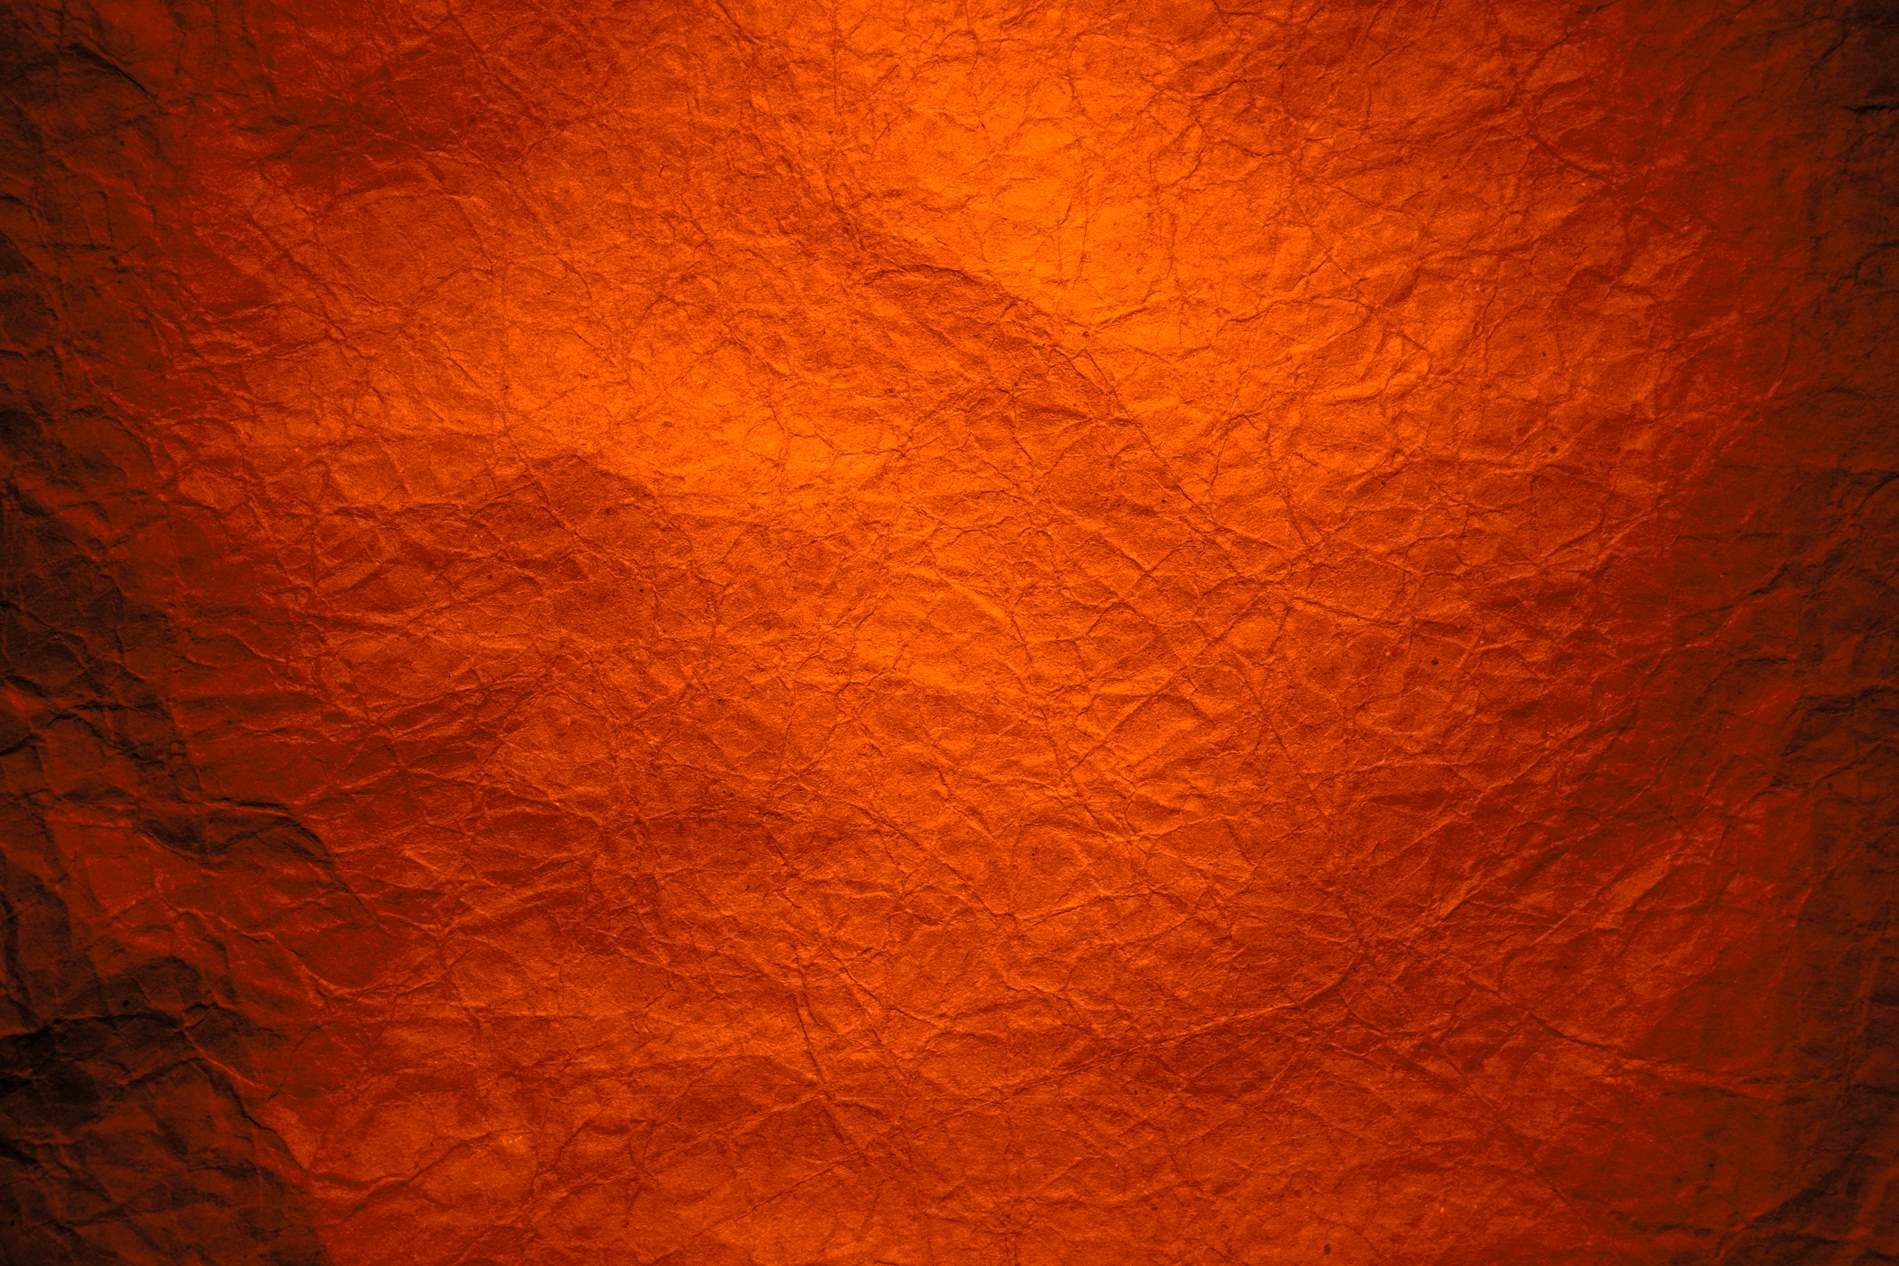 Red Orange Wrinkled Texture Background